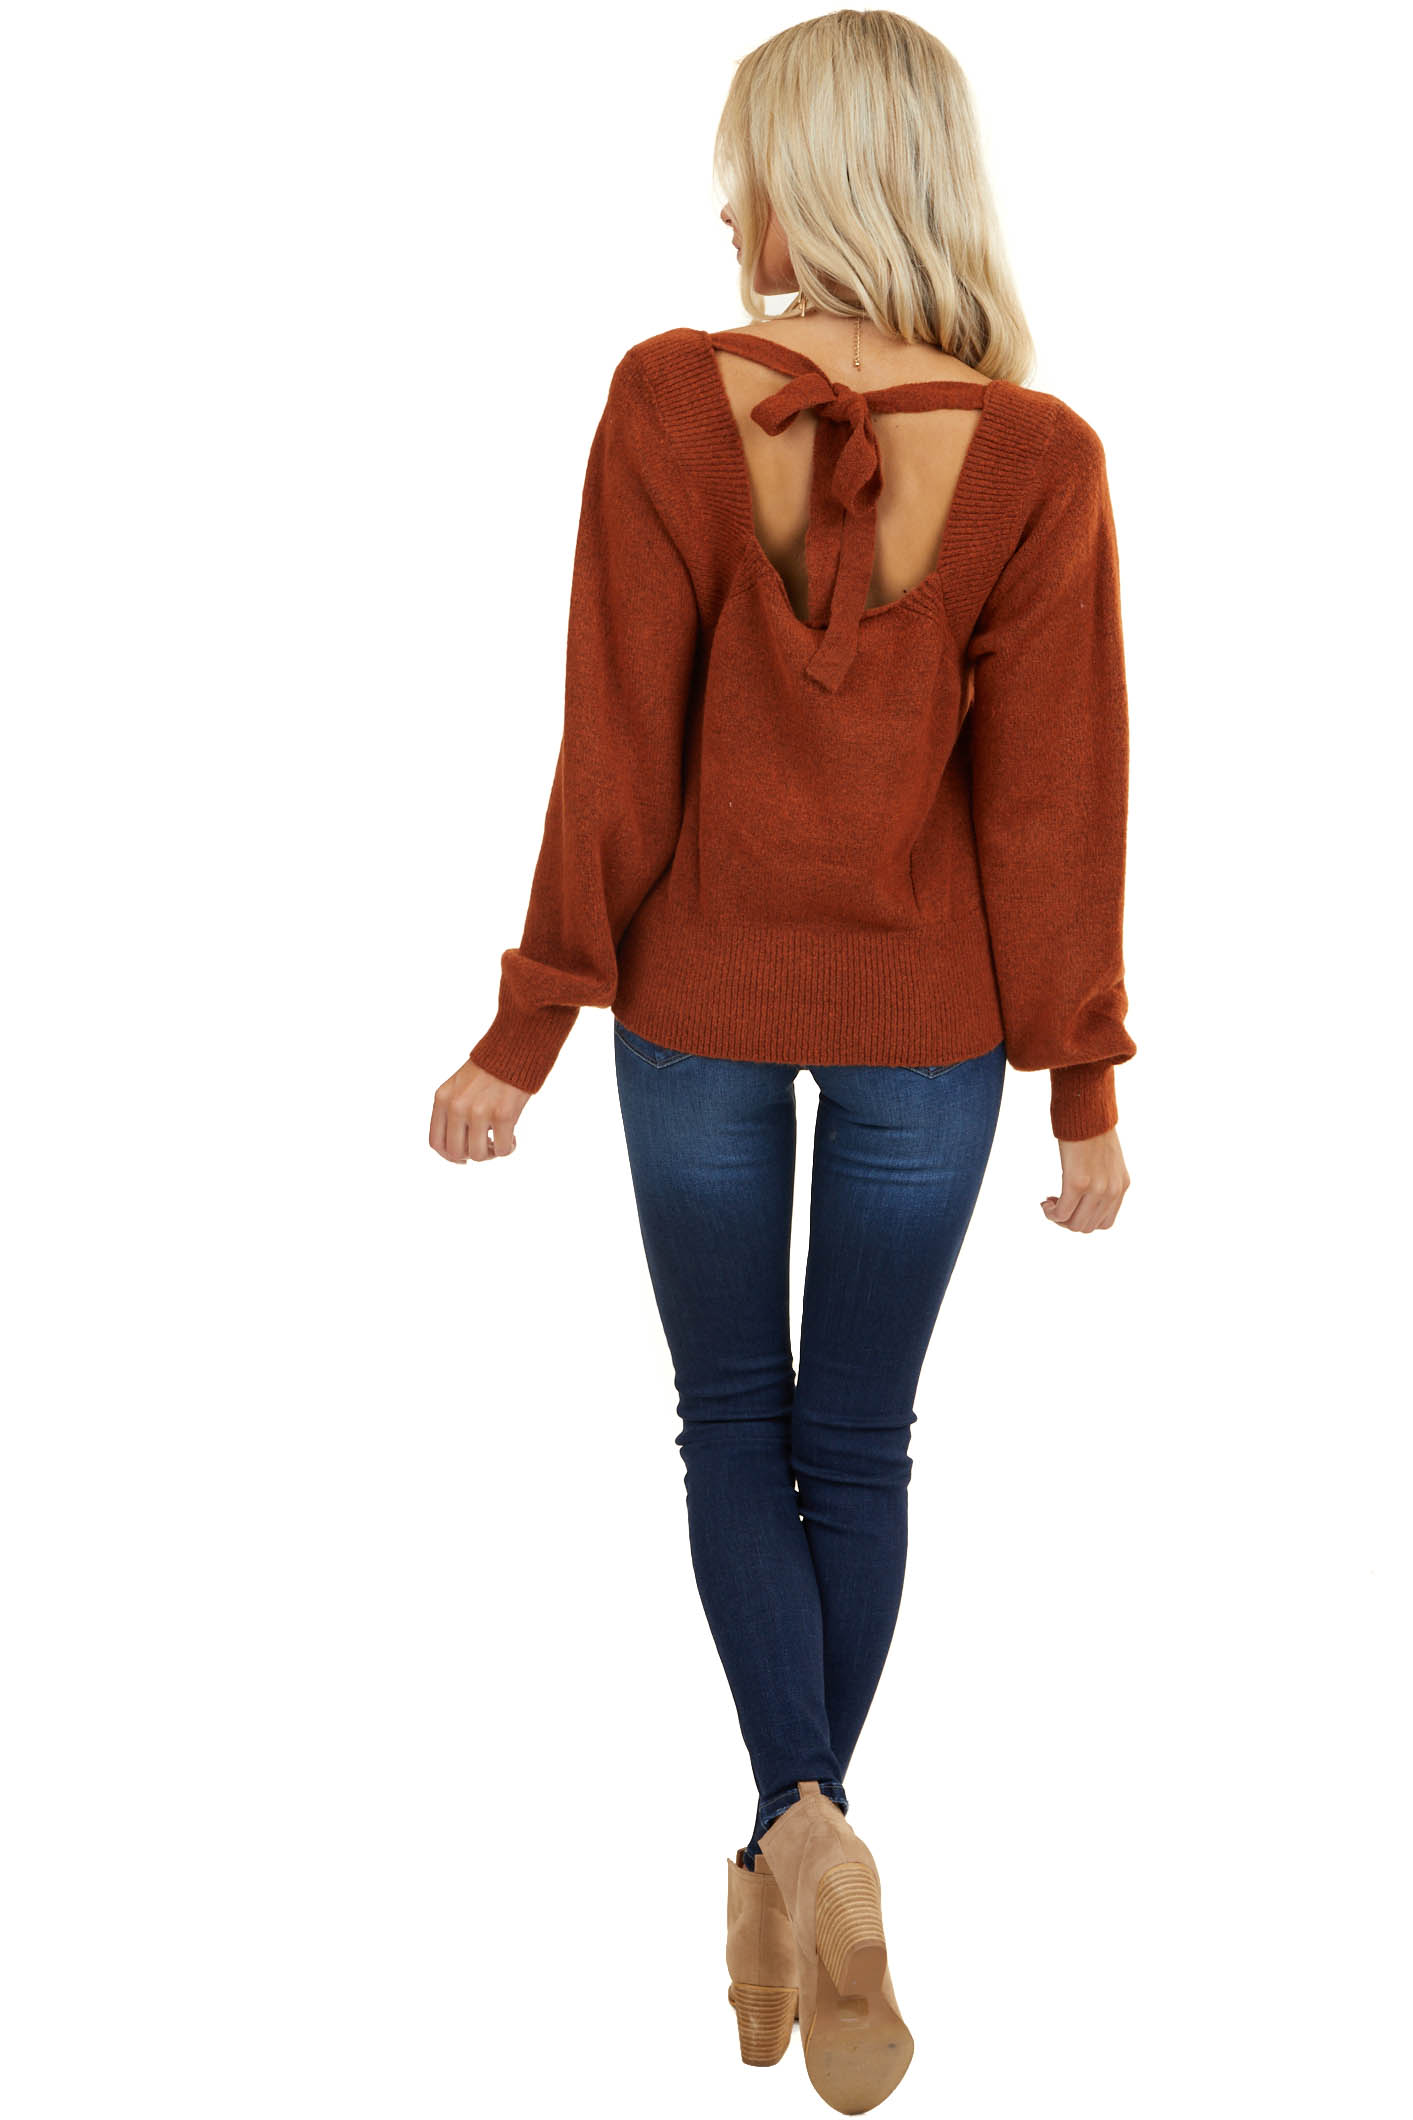 Rust Square Neckline Sweater with Back Tie Detail